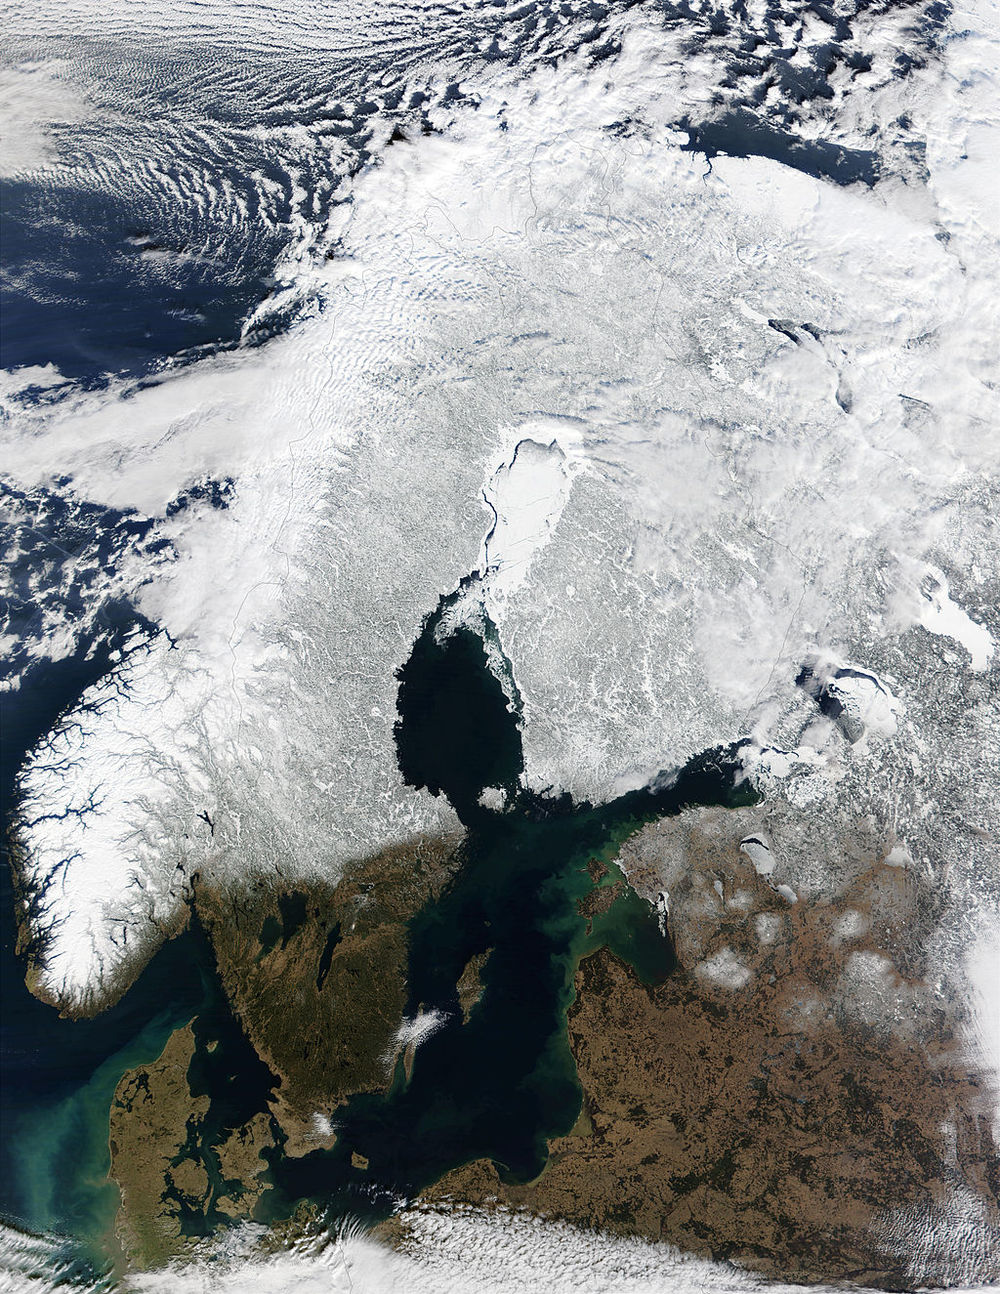 This satellite image (c. 2002) is a good reference for a) the difference in topography between Norway and Sweden, and b) the numerous lakes and rivers, formed through glacial processes.